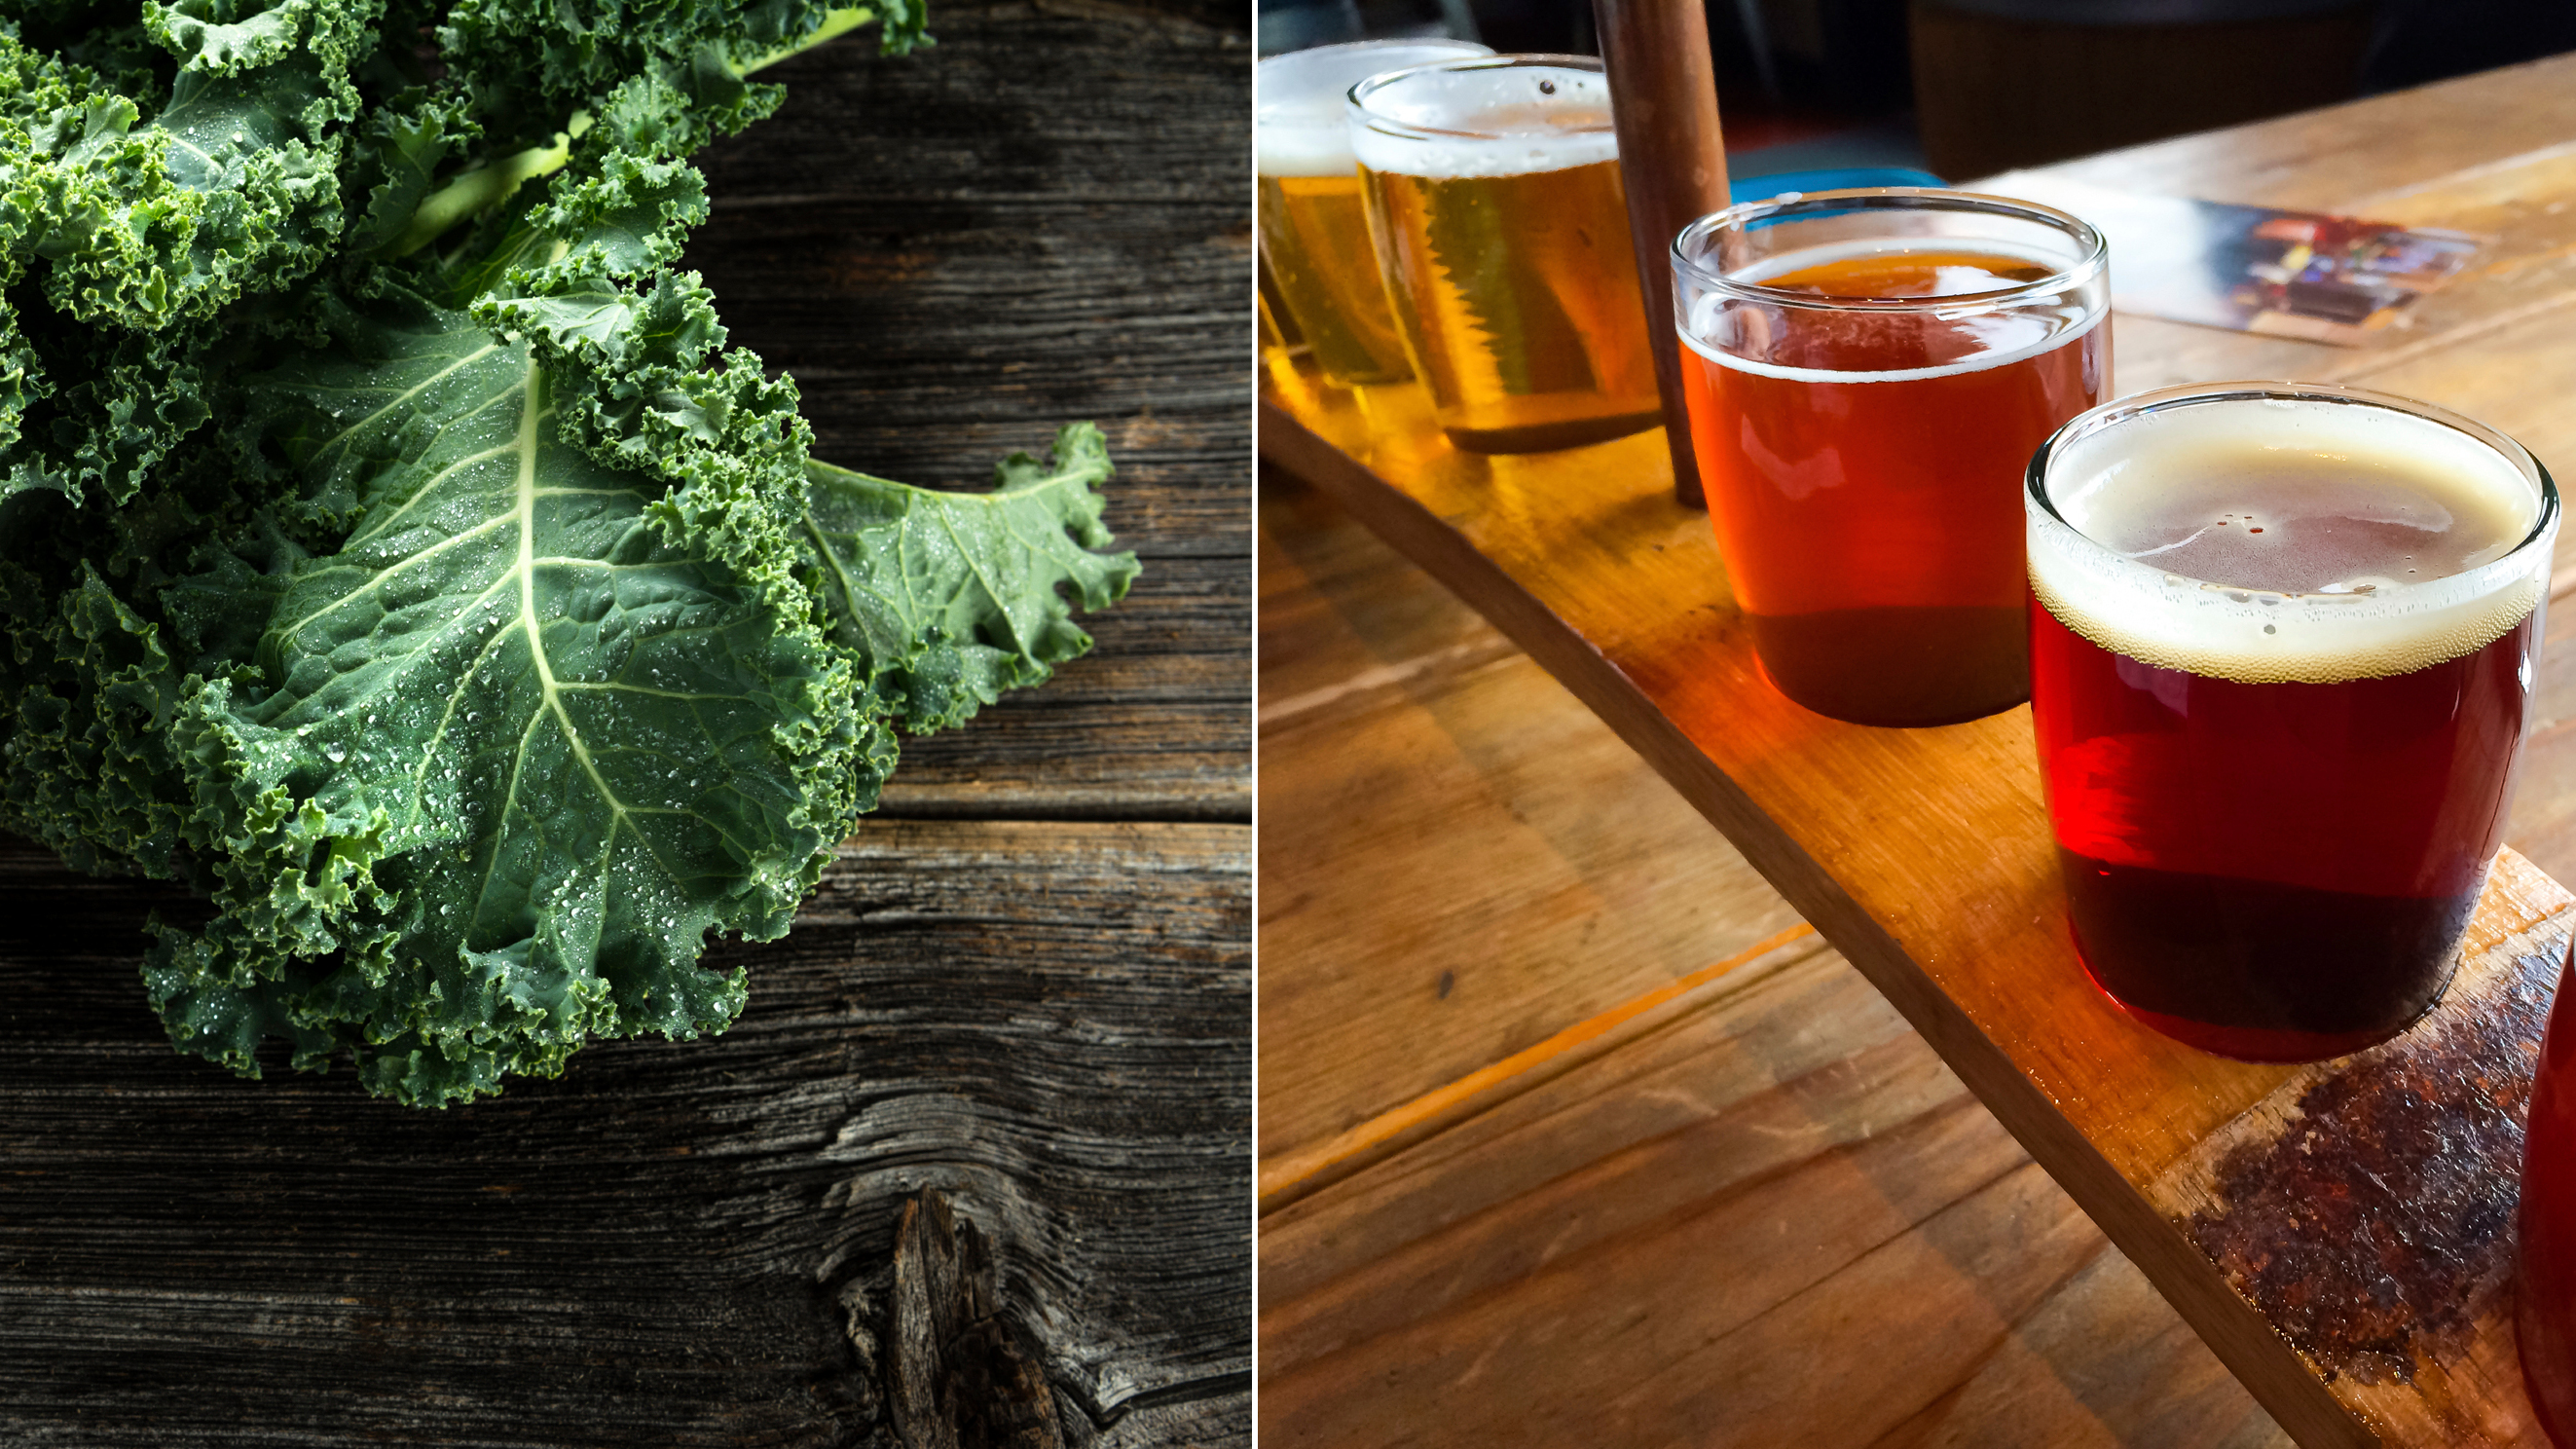 From Kale To Pale Ale, A Love Of Bitter May Be In Your Genes